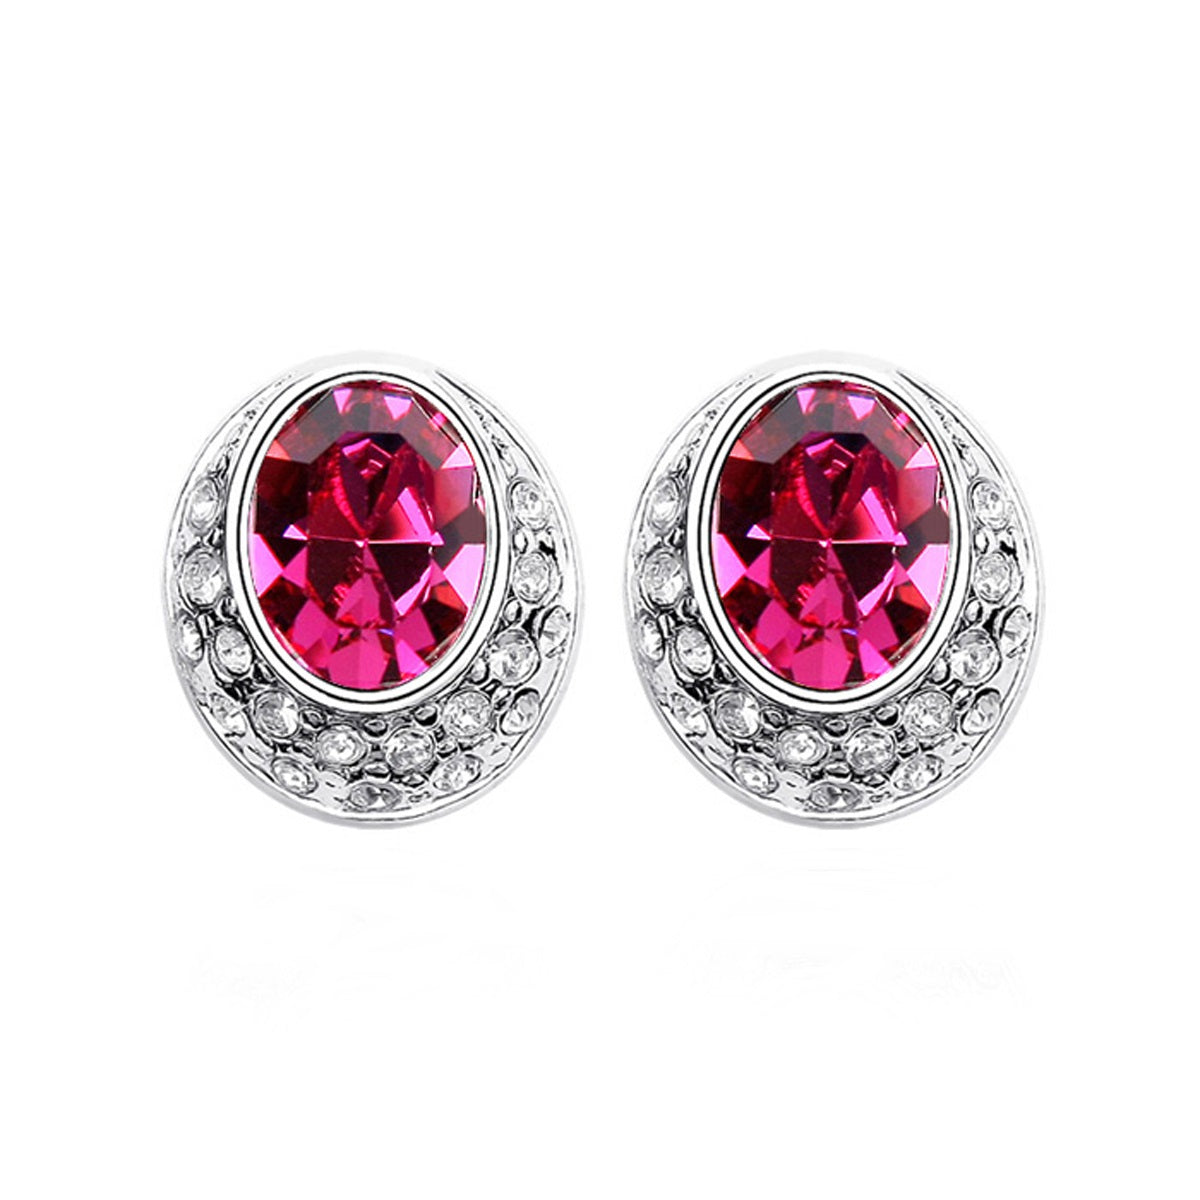 Magenta Swarovski Elements Crystal Earrings